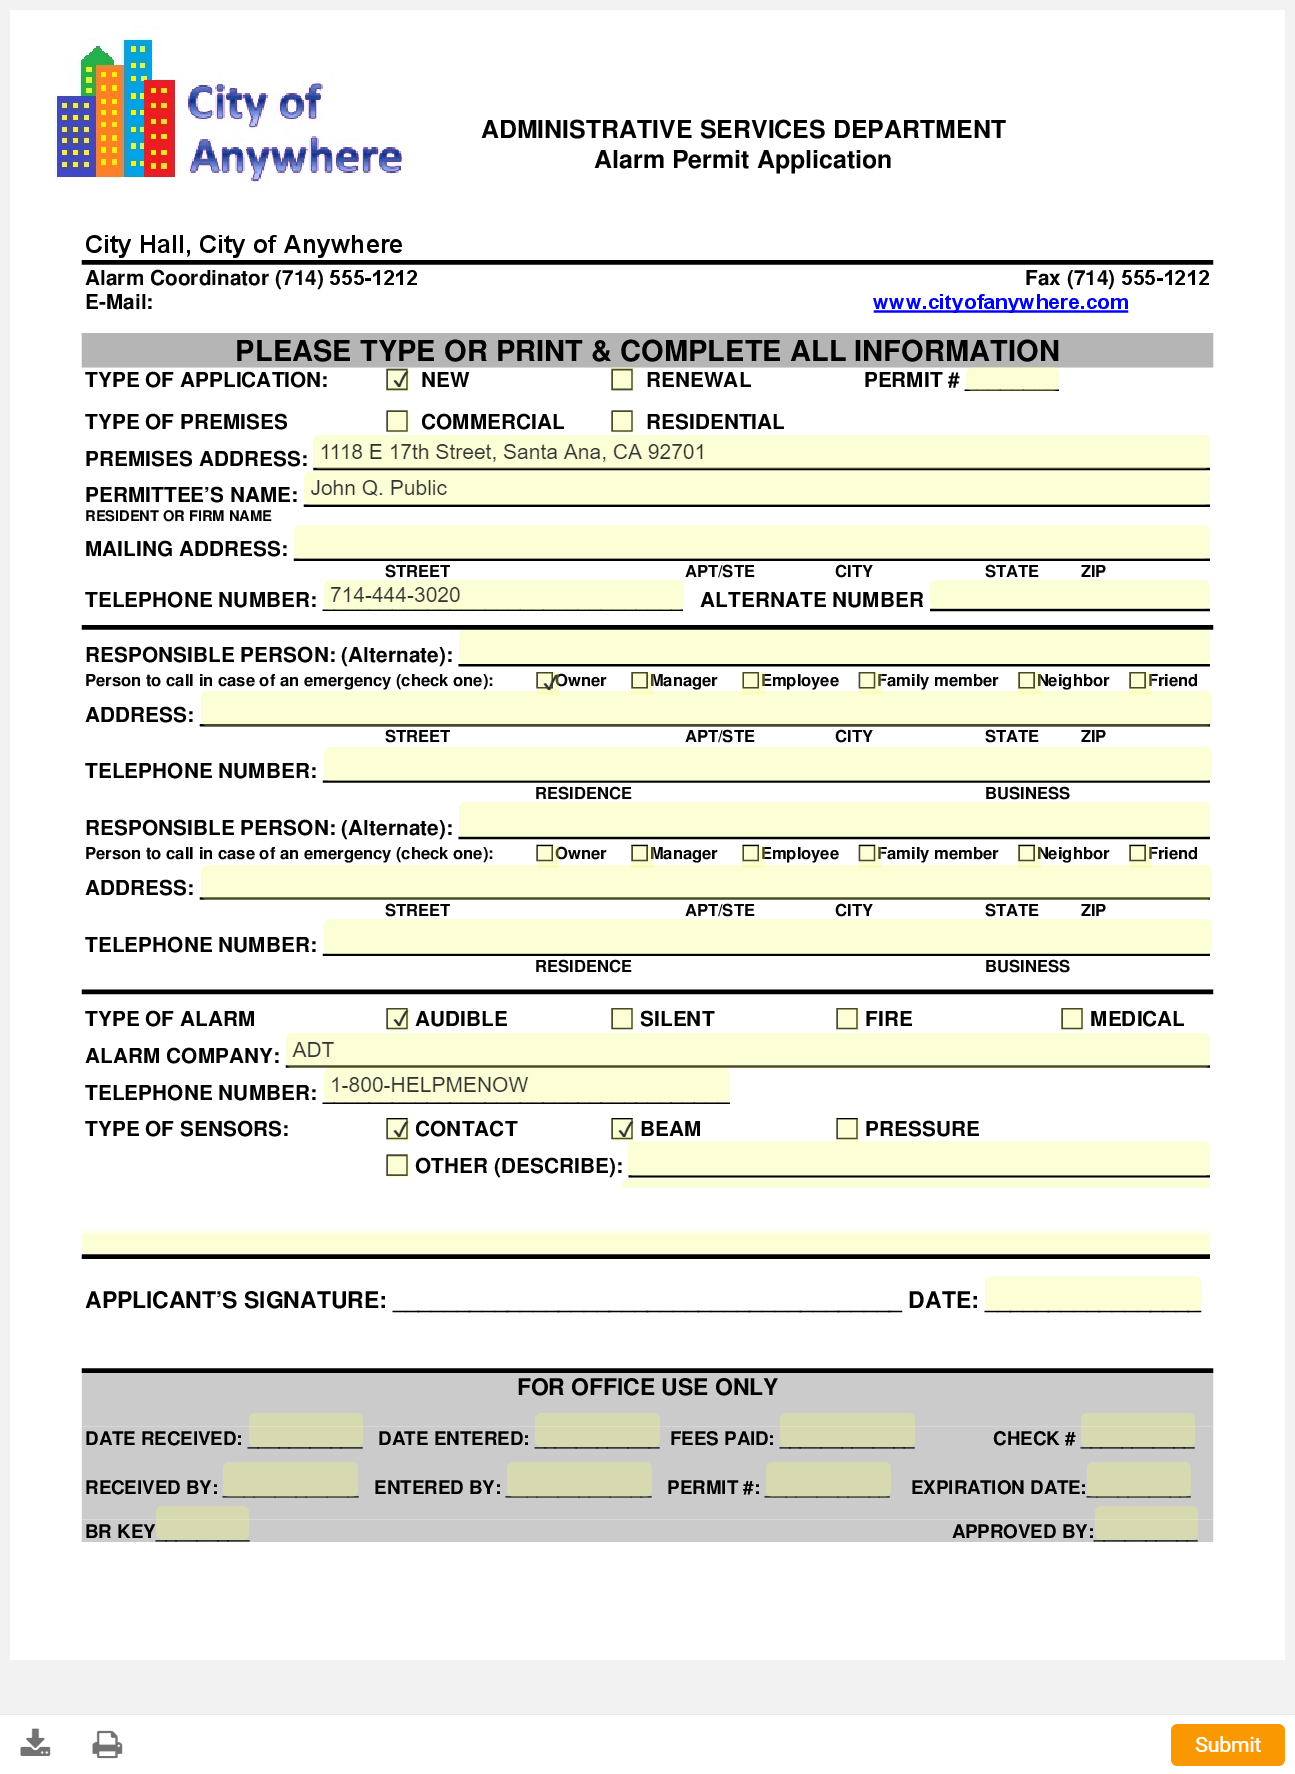 Open 311i Forms